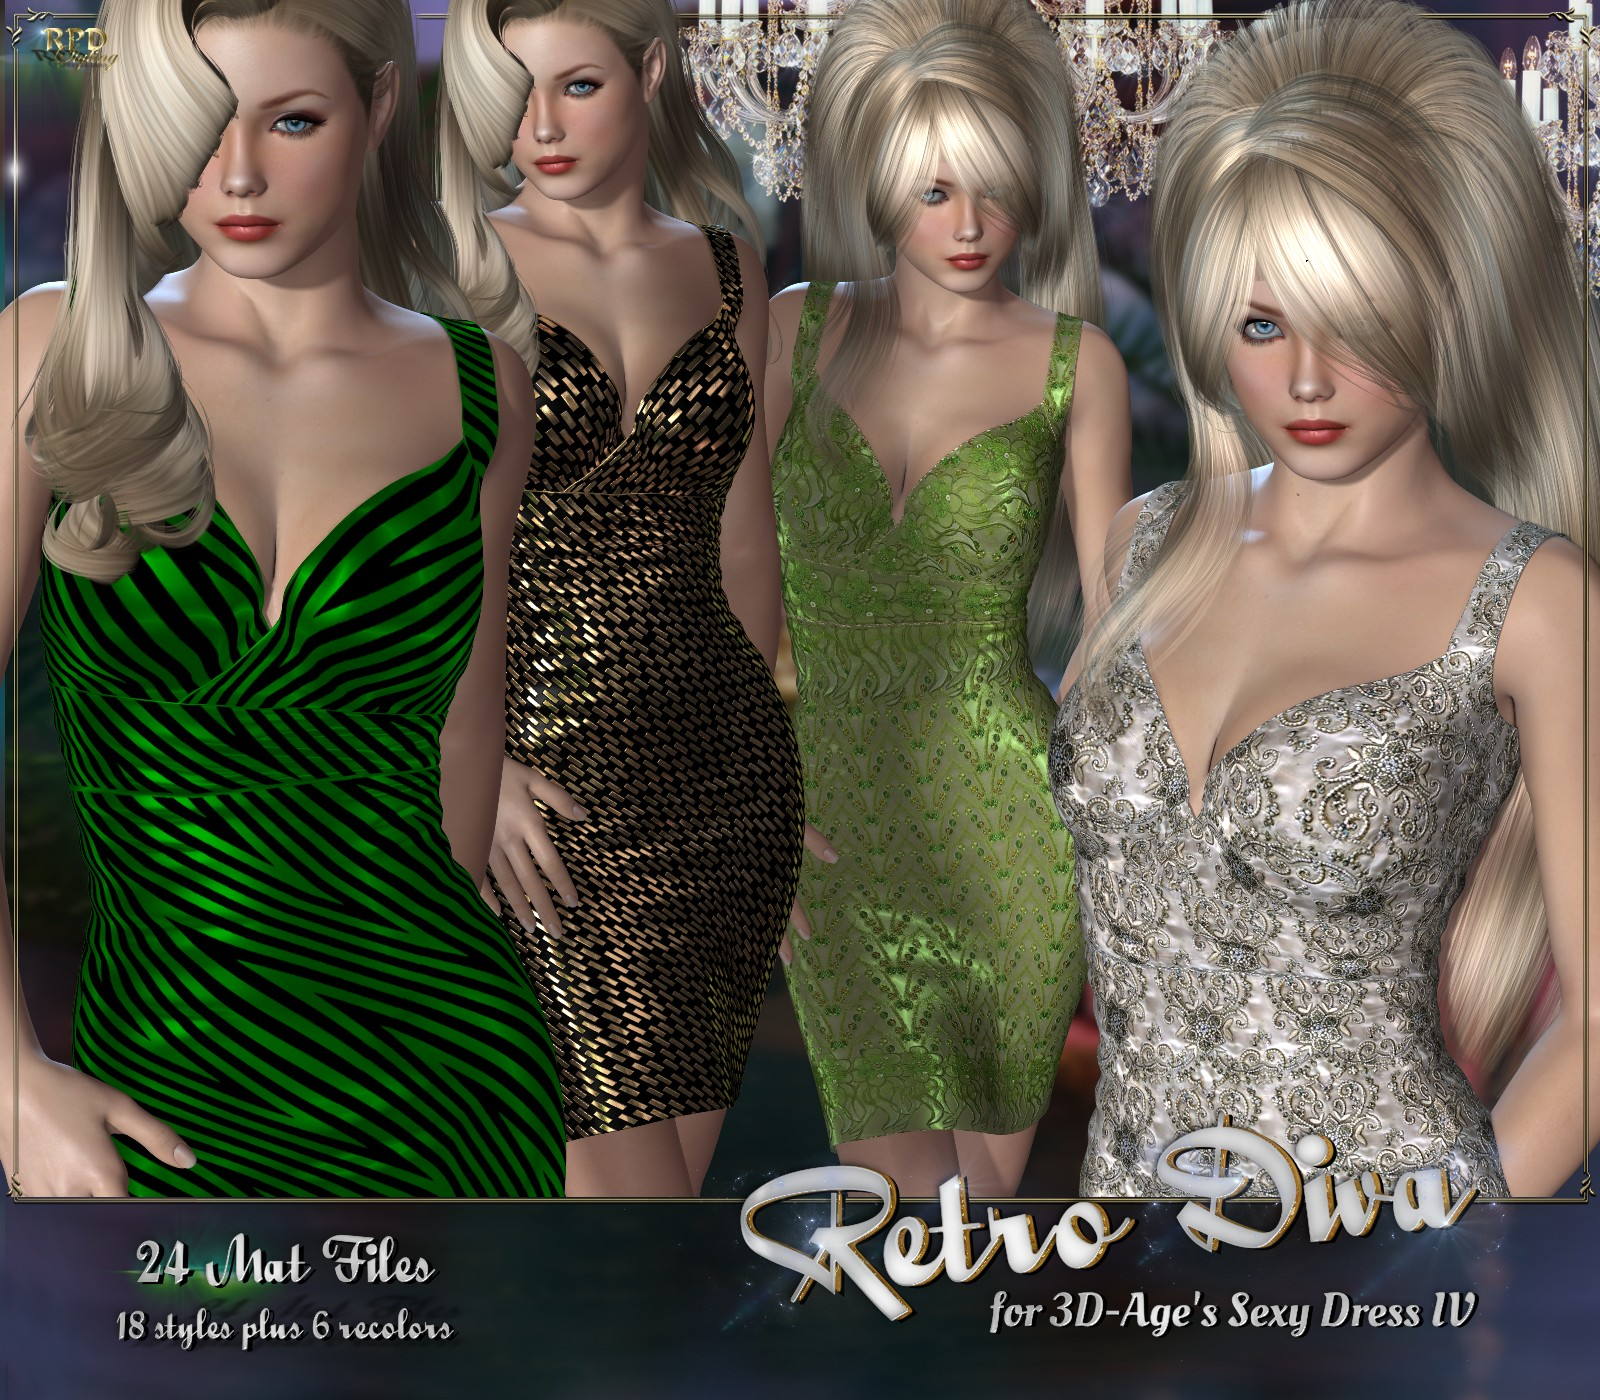 Sexy Dress IV - Retro Diva